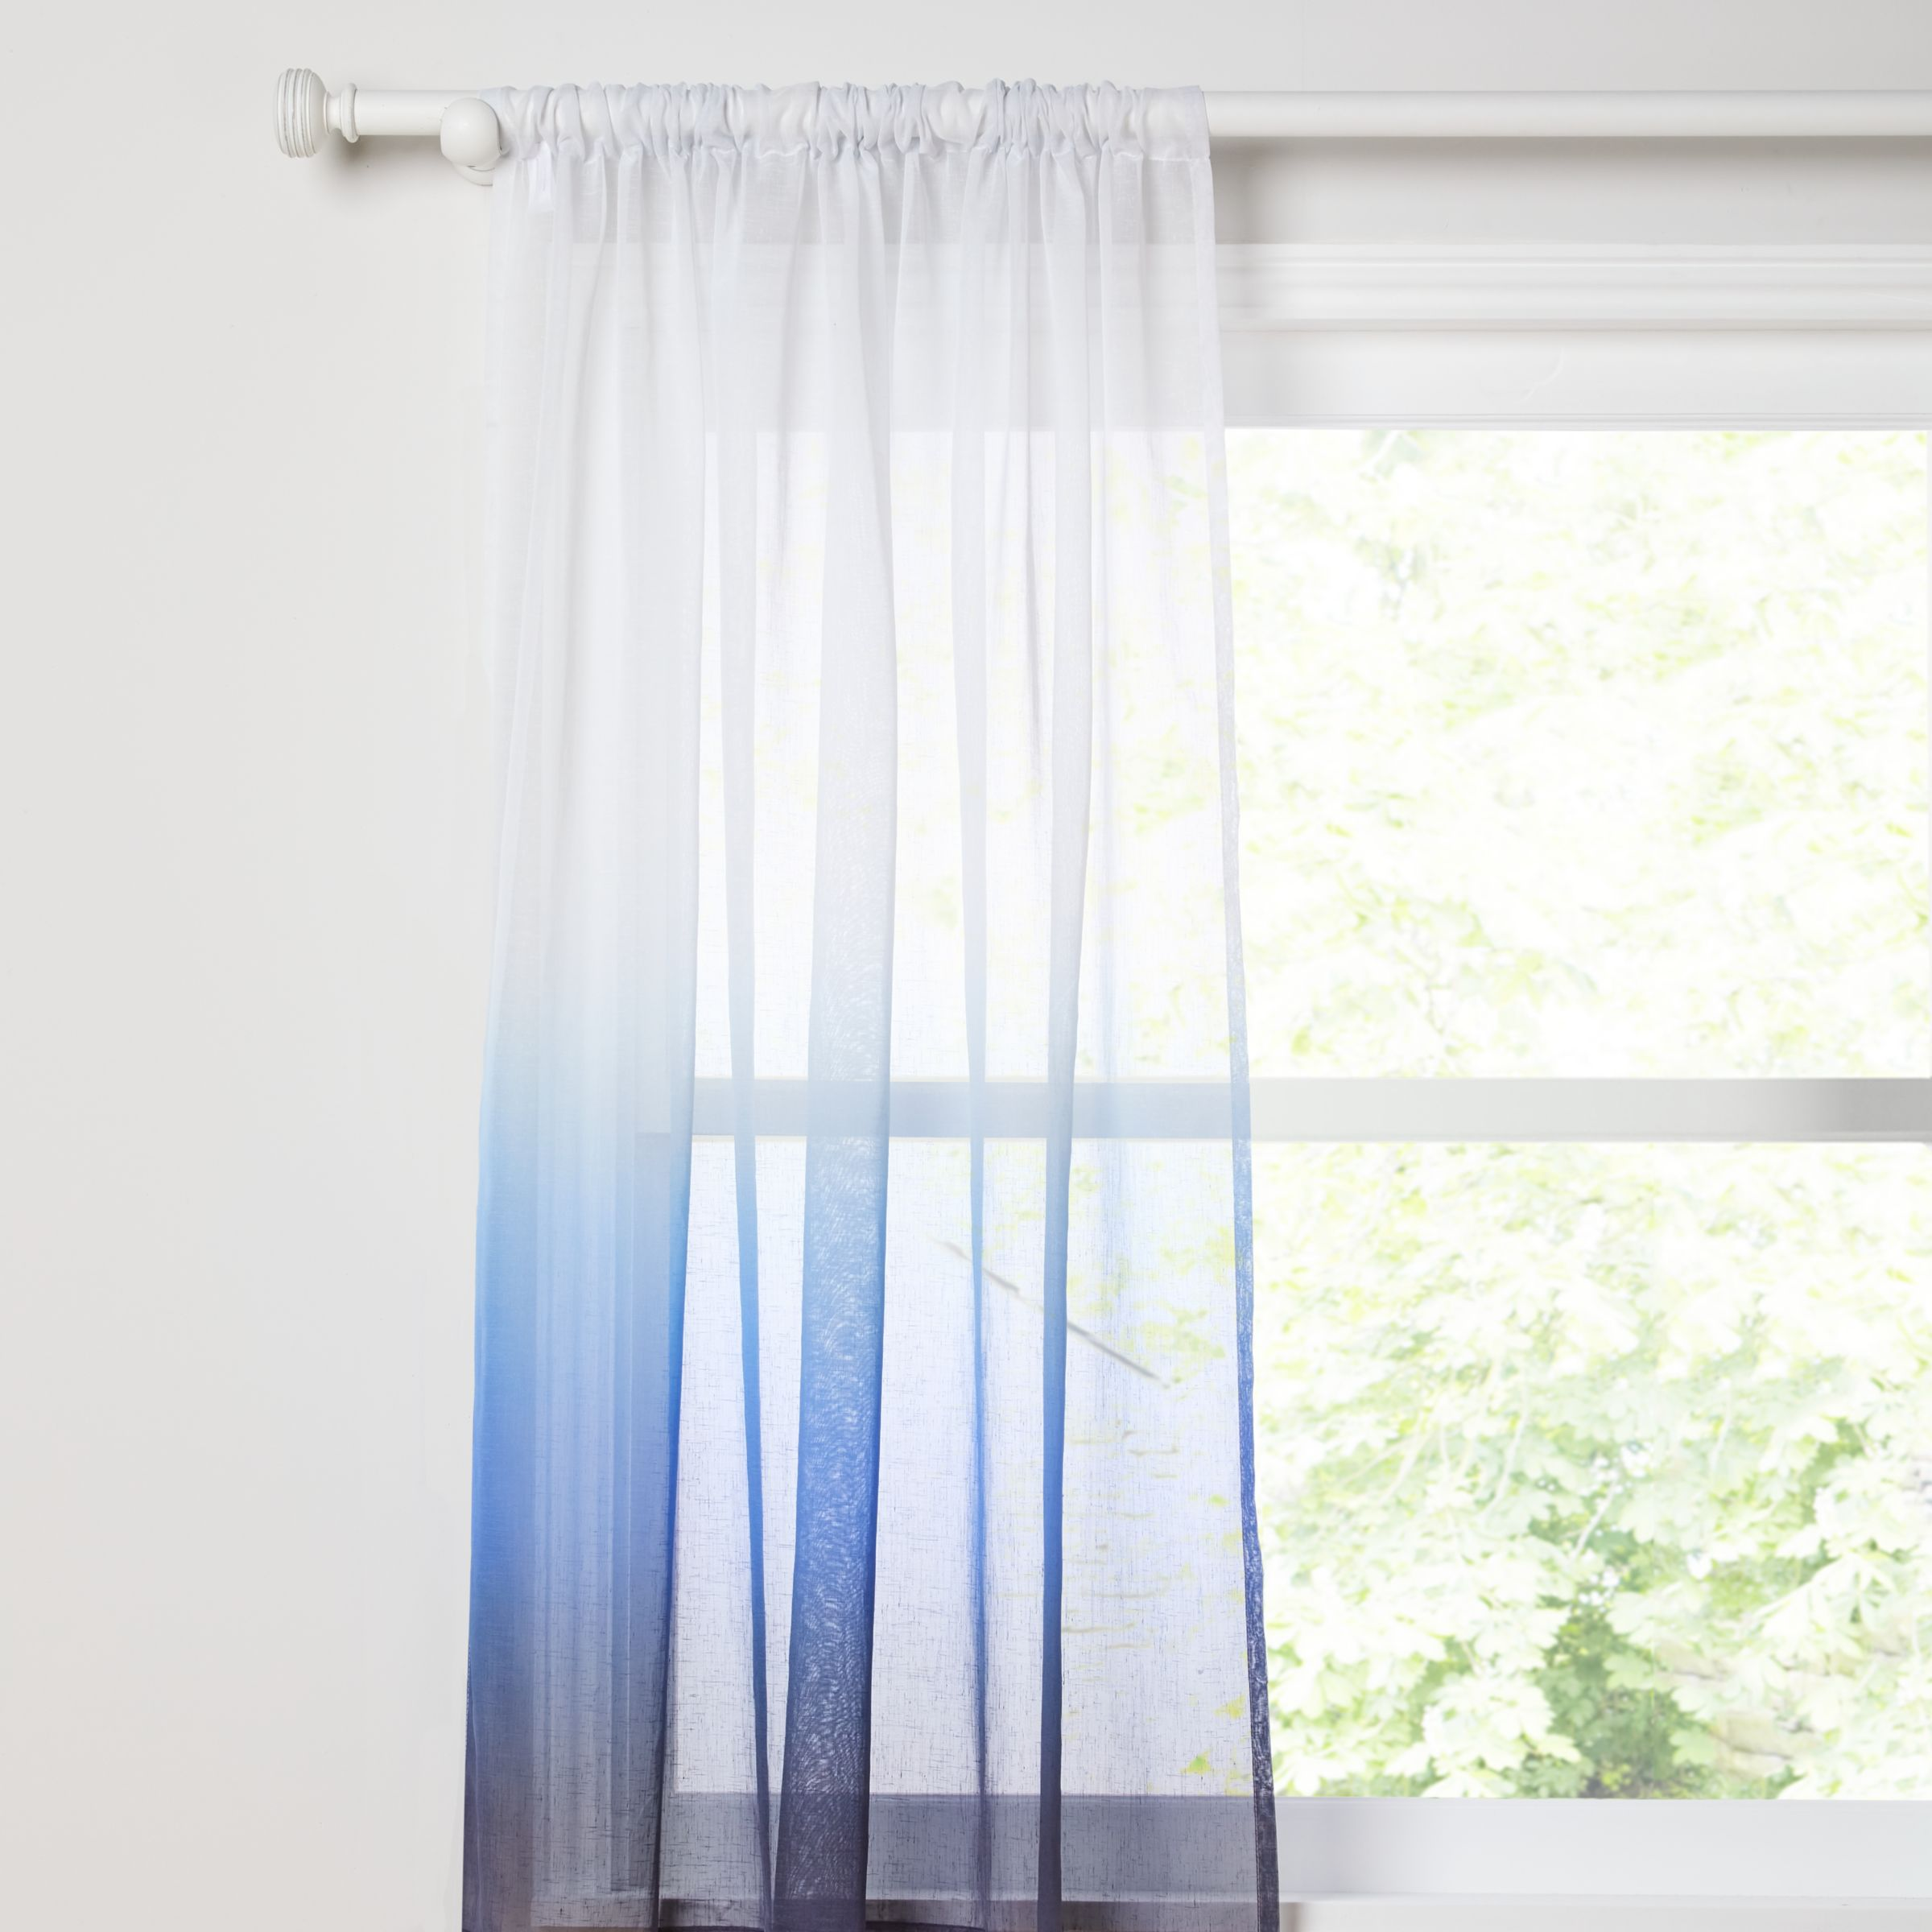 Ready Made Sheer Curtains Online John Lewis Ombre Voile Panel Blue At John Lewis